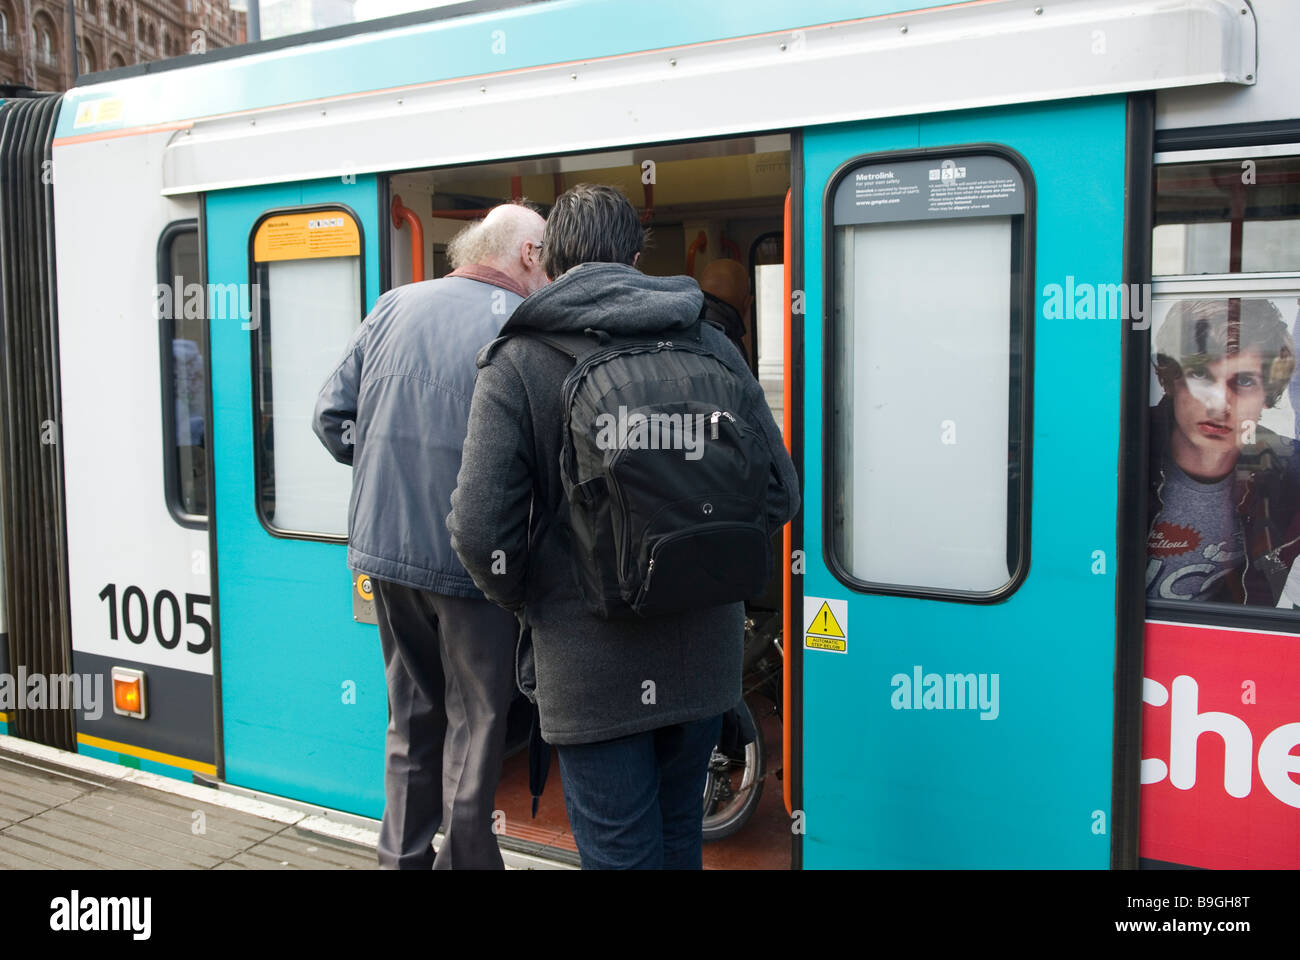 People getting on the Tram Manchester city centre UK - Stock Image